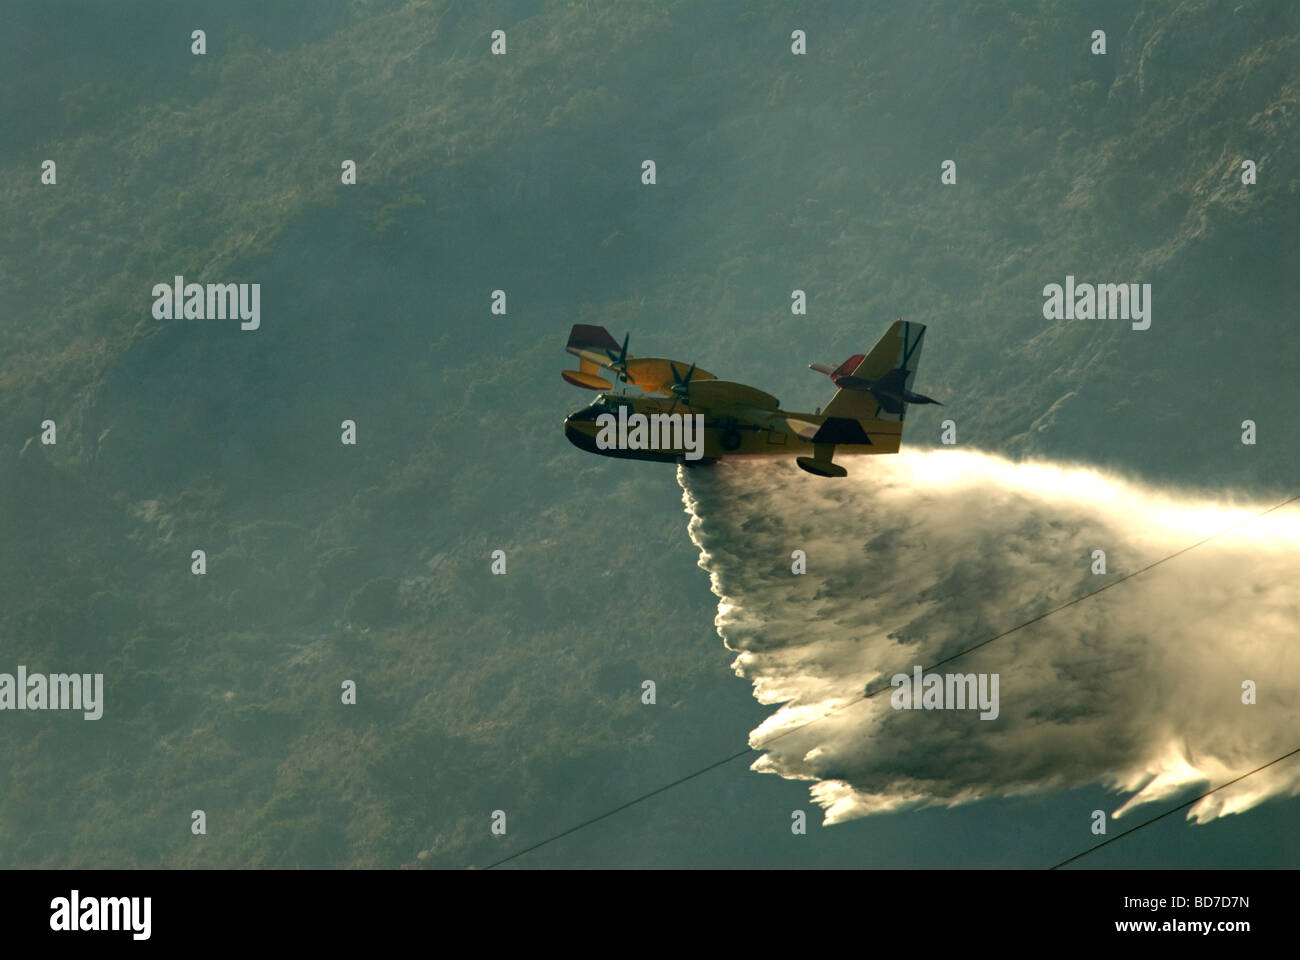 Twin engined Canadian firefighting aircraft dropping water onto forest fire - Stock Image